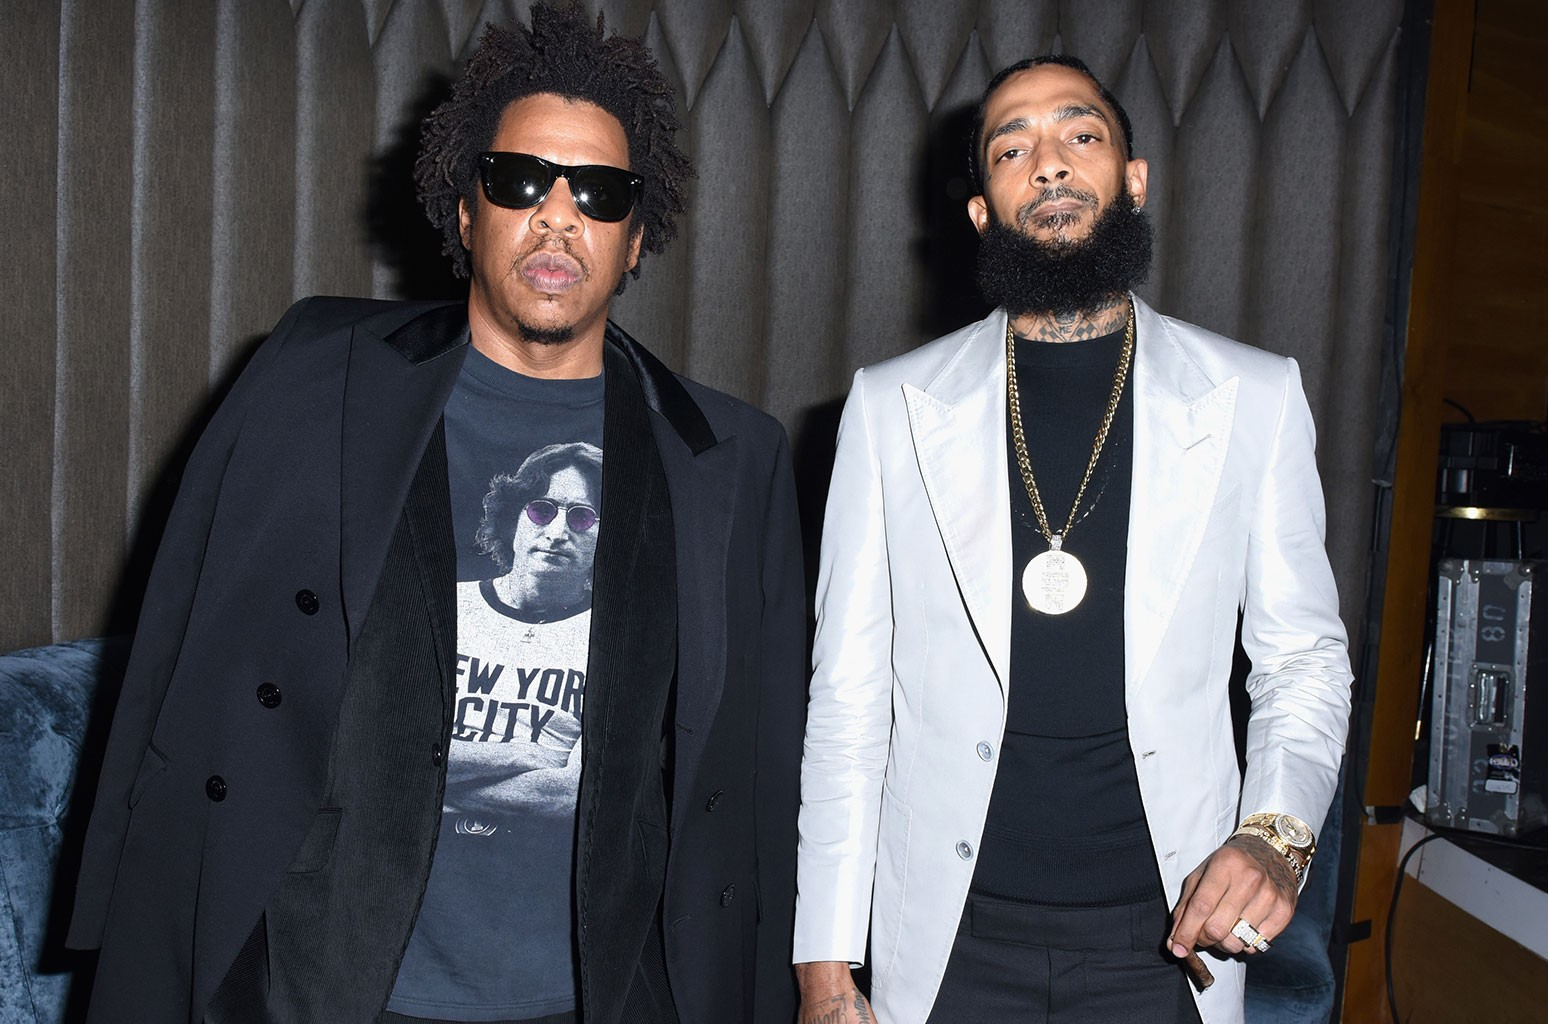 Jay-Z and Nipsey Hussle